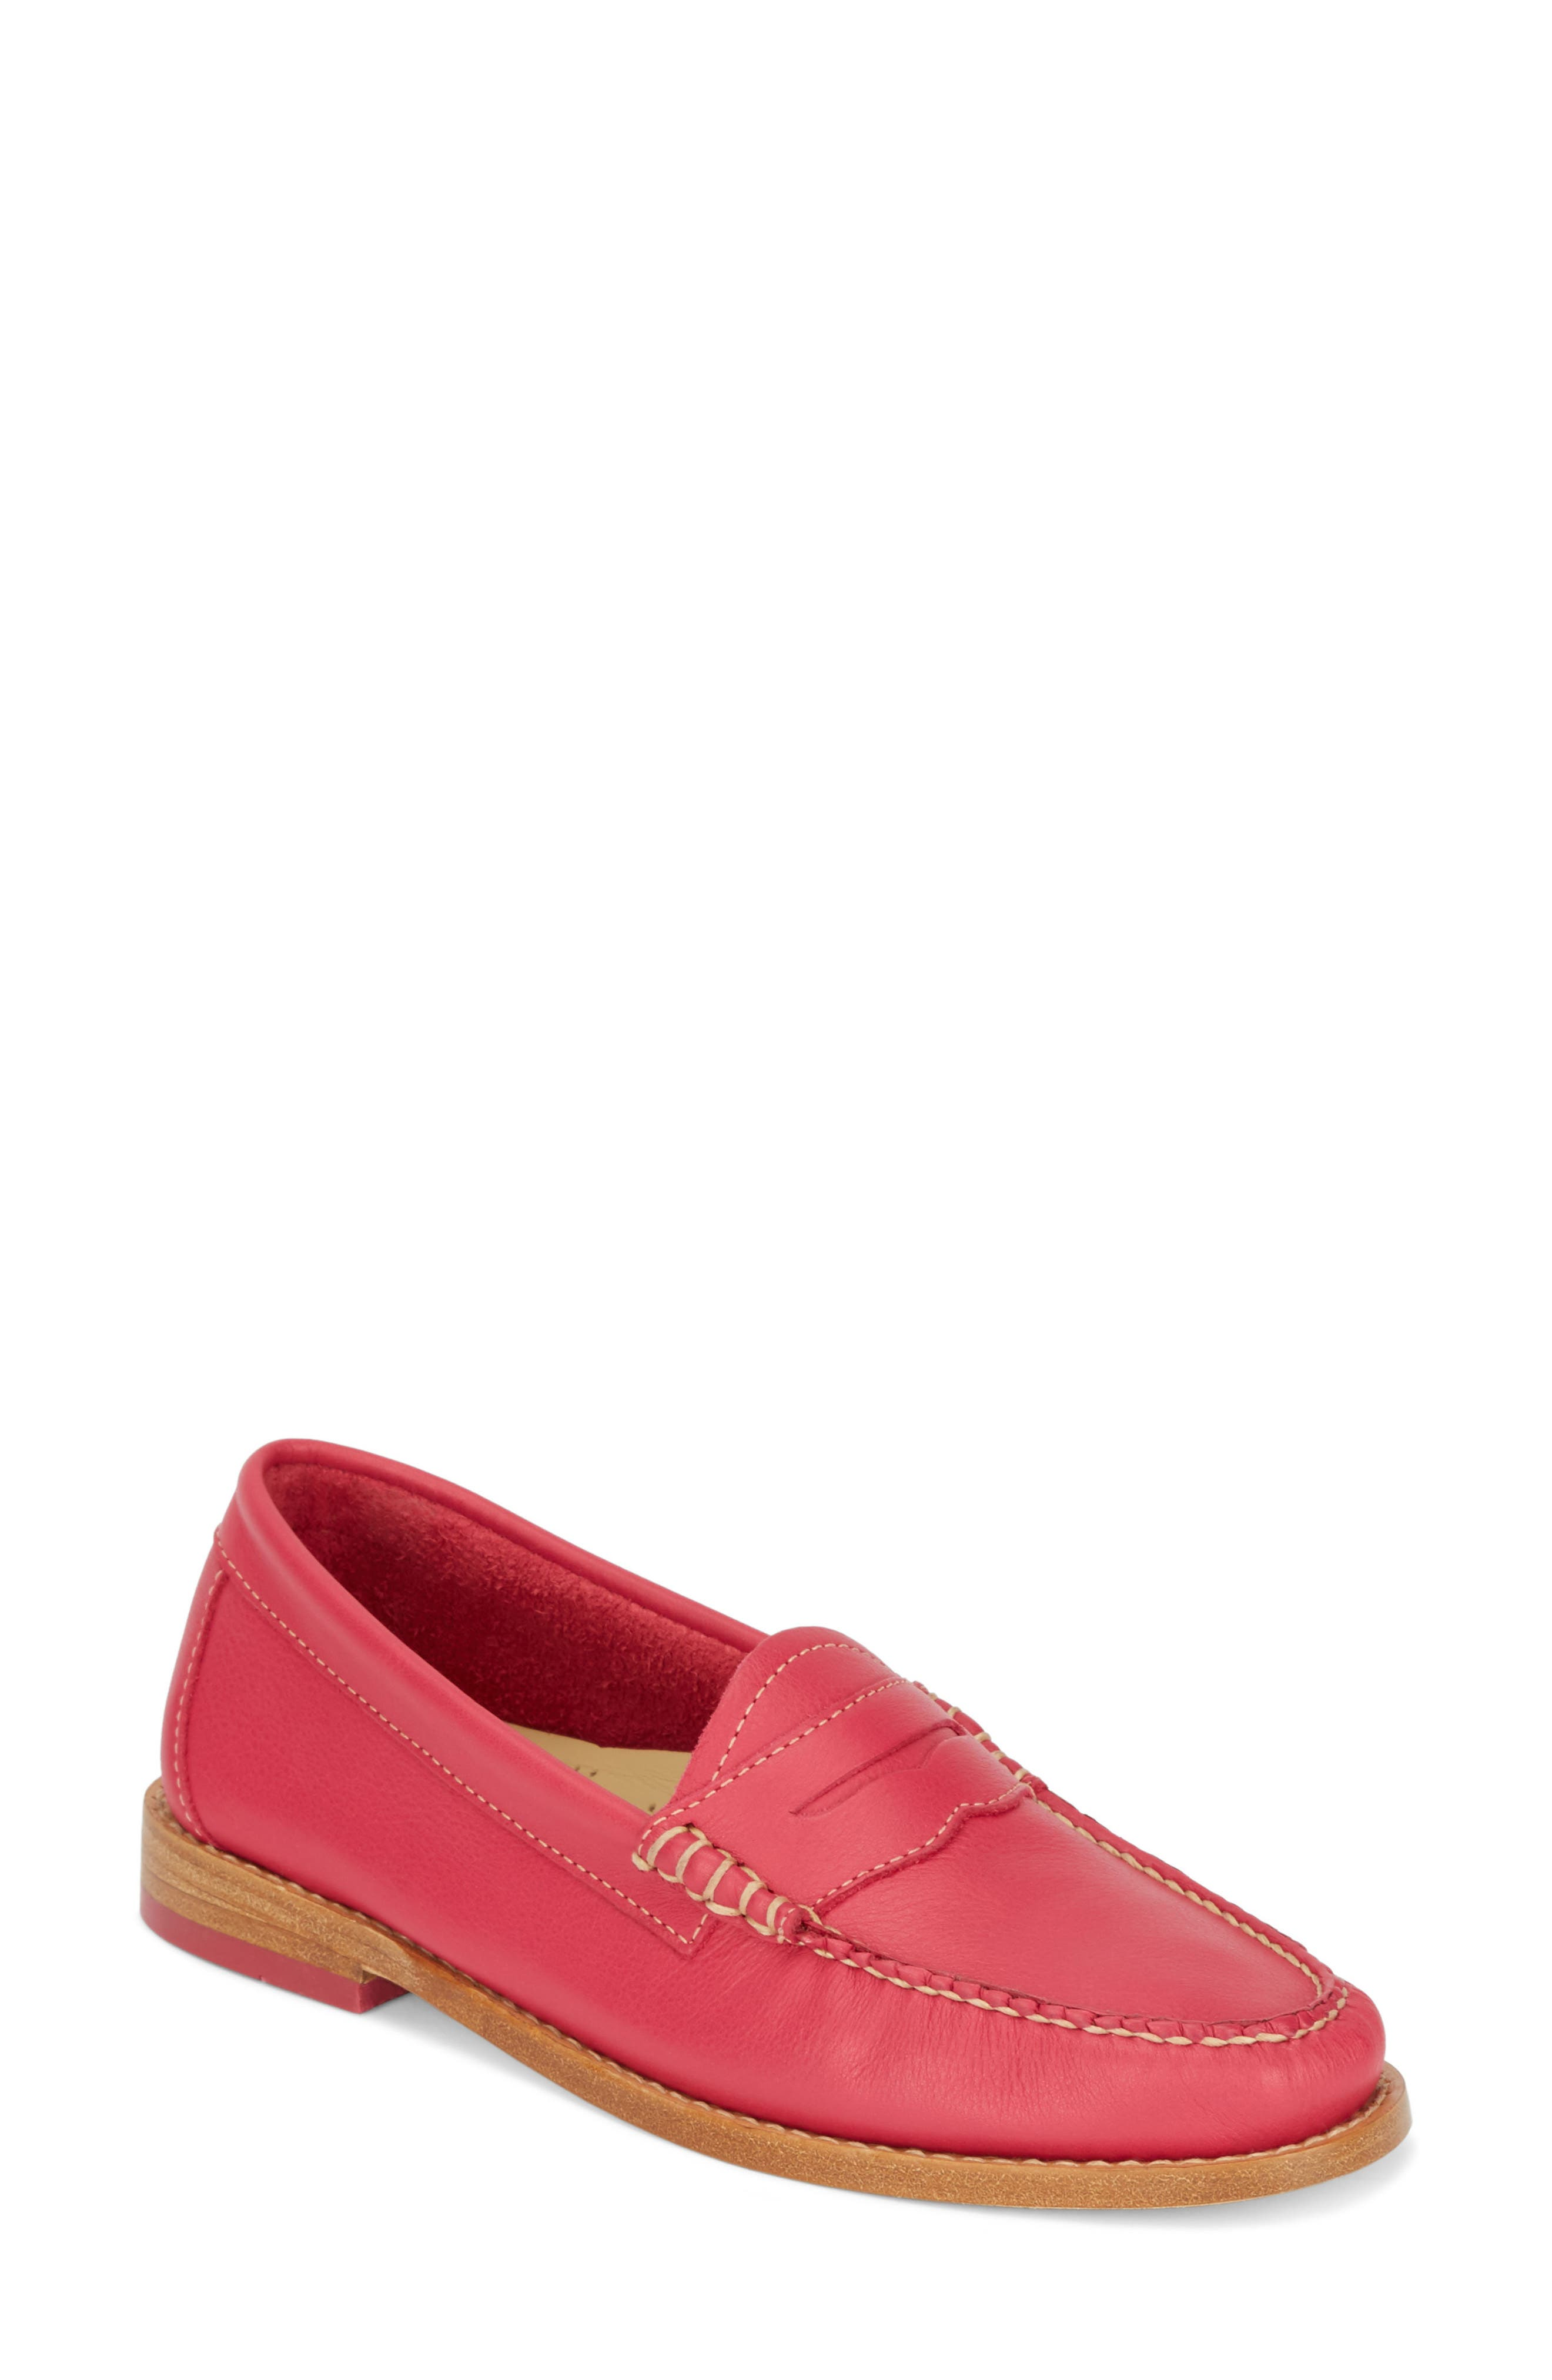 'Whitney' Loafer,                         Main,                         color, BERRY PINK LEATHER